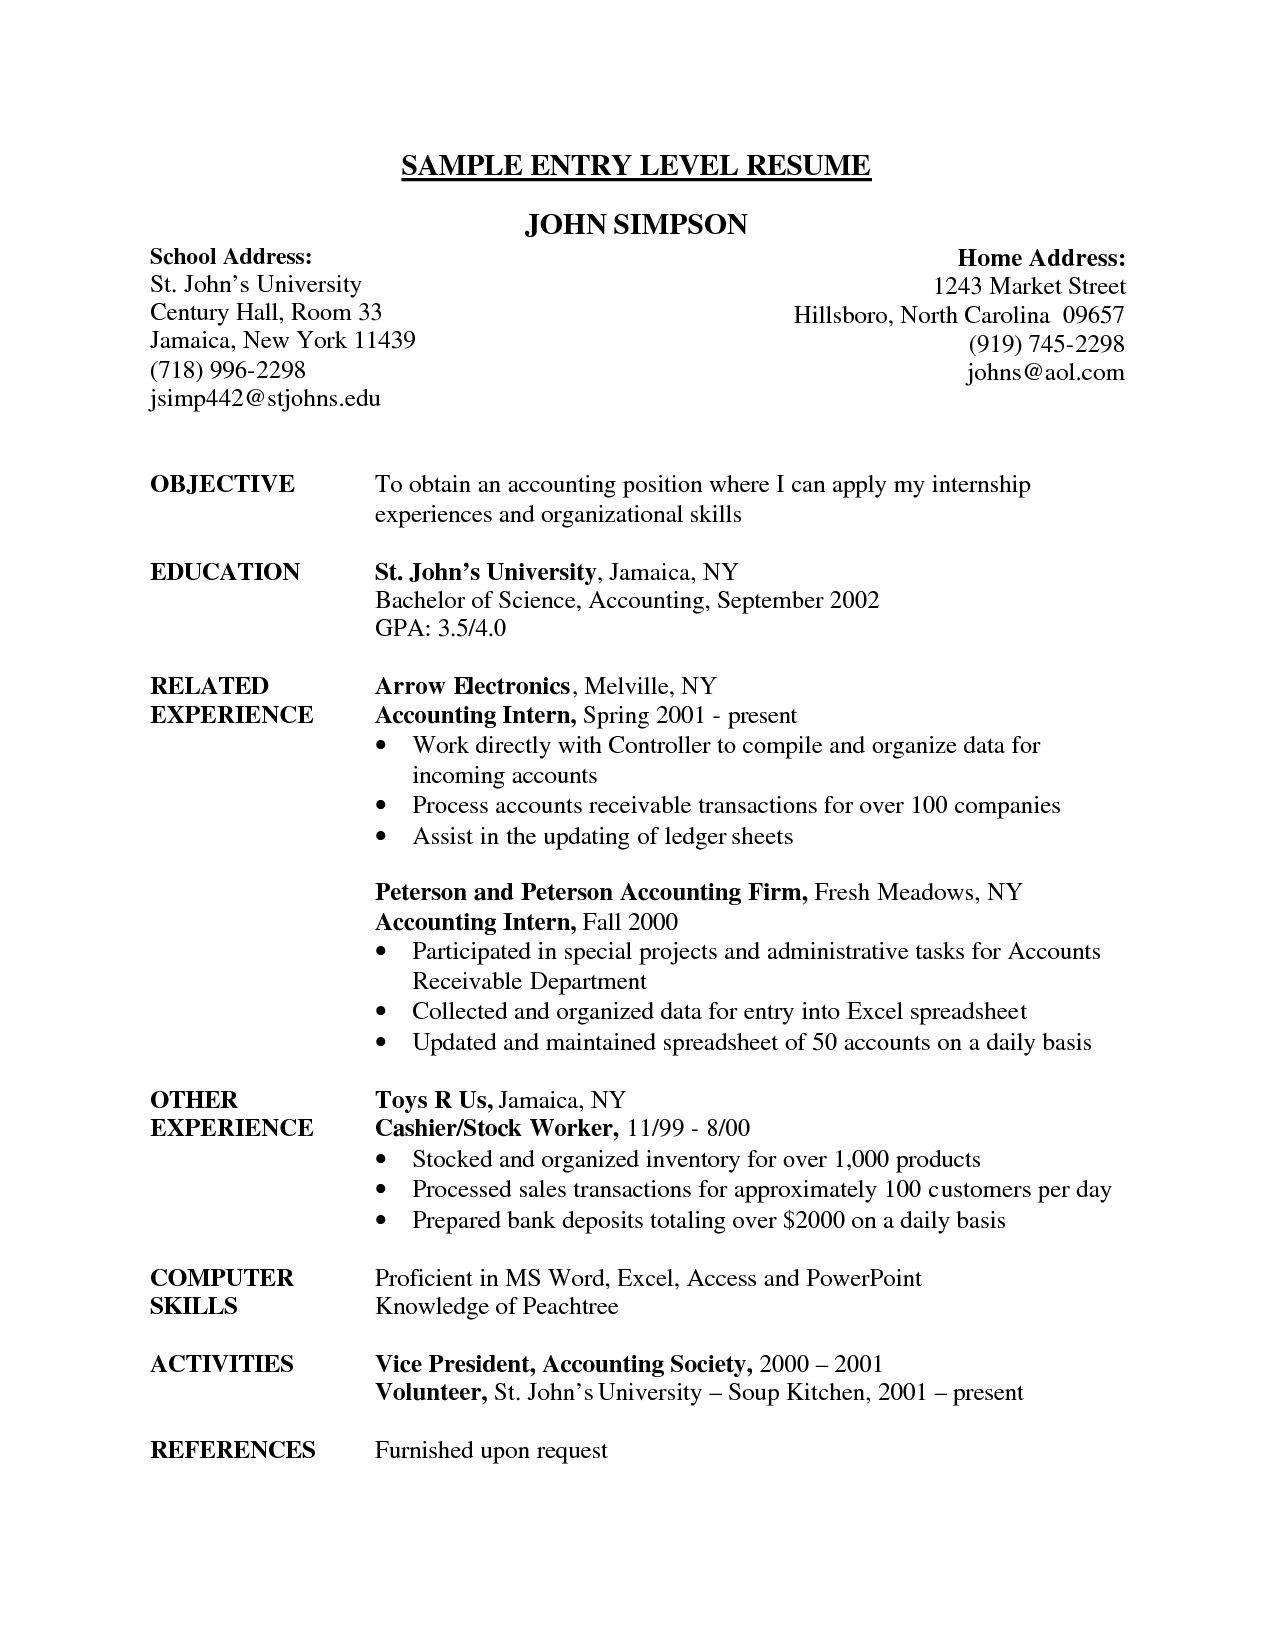 Accounting Internship Resume Objective Awesome Resume Examples Entry Level  Resume Examples  Pinterest  Resume .